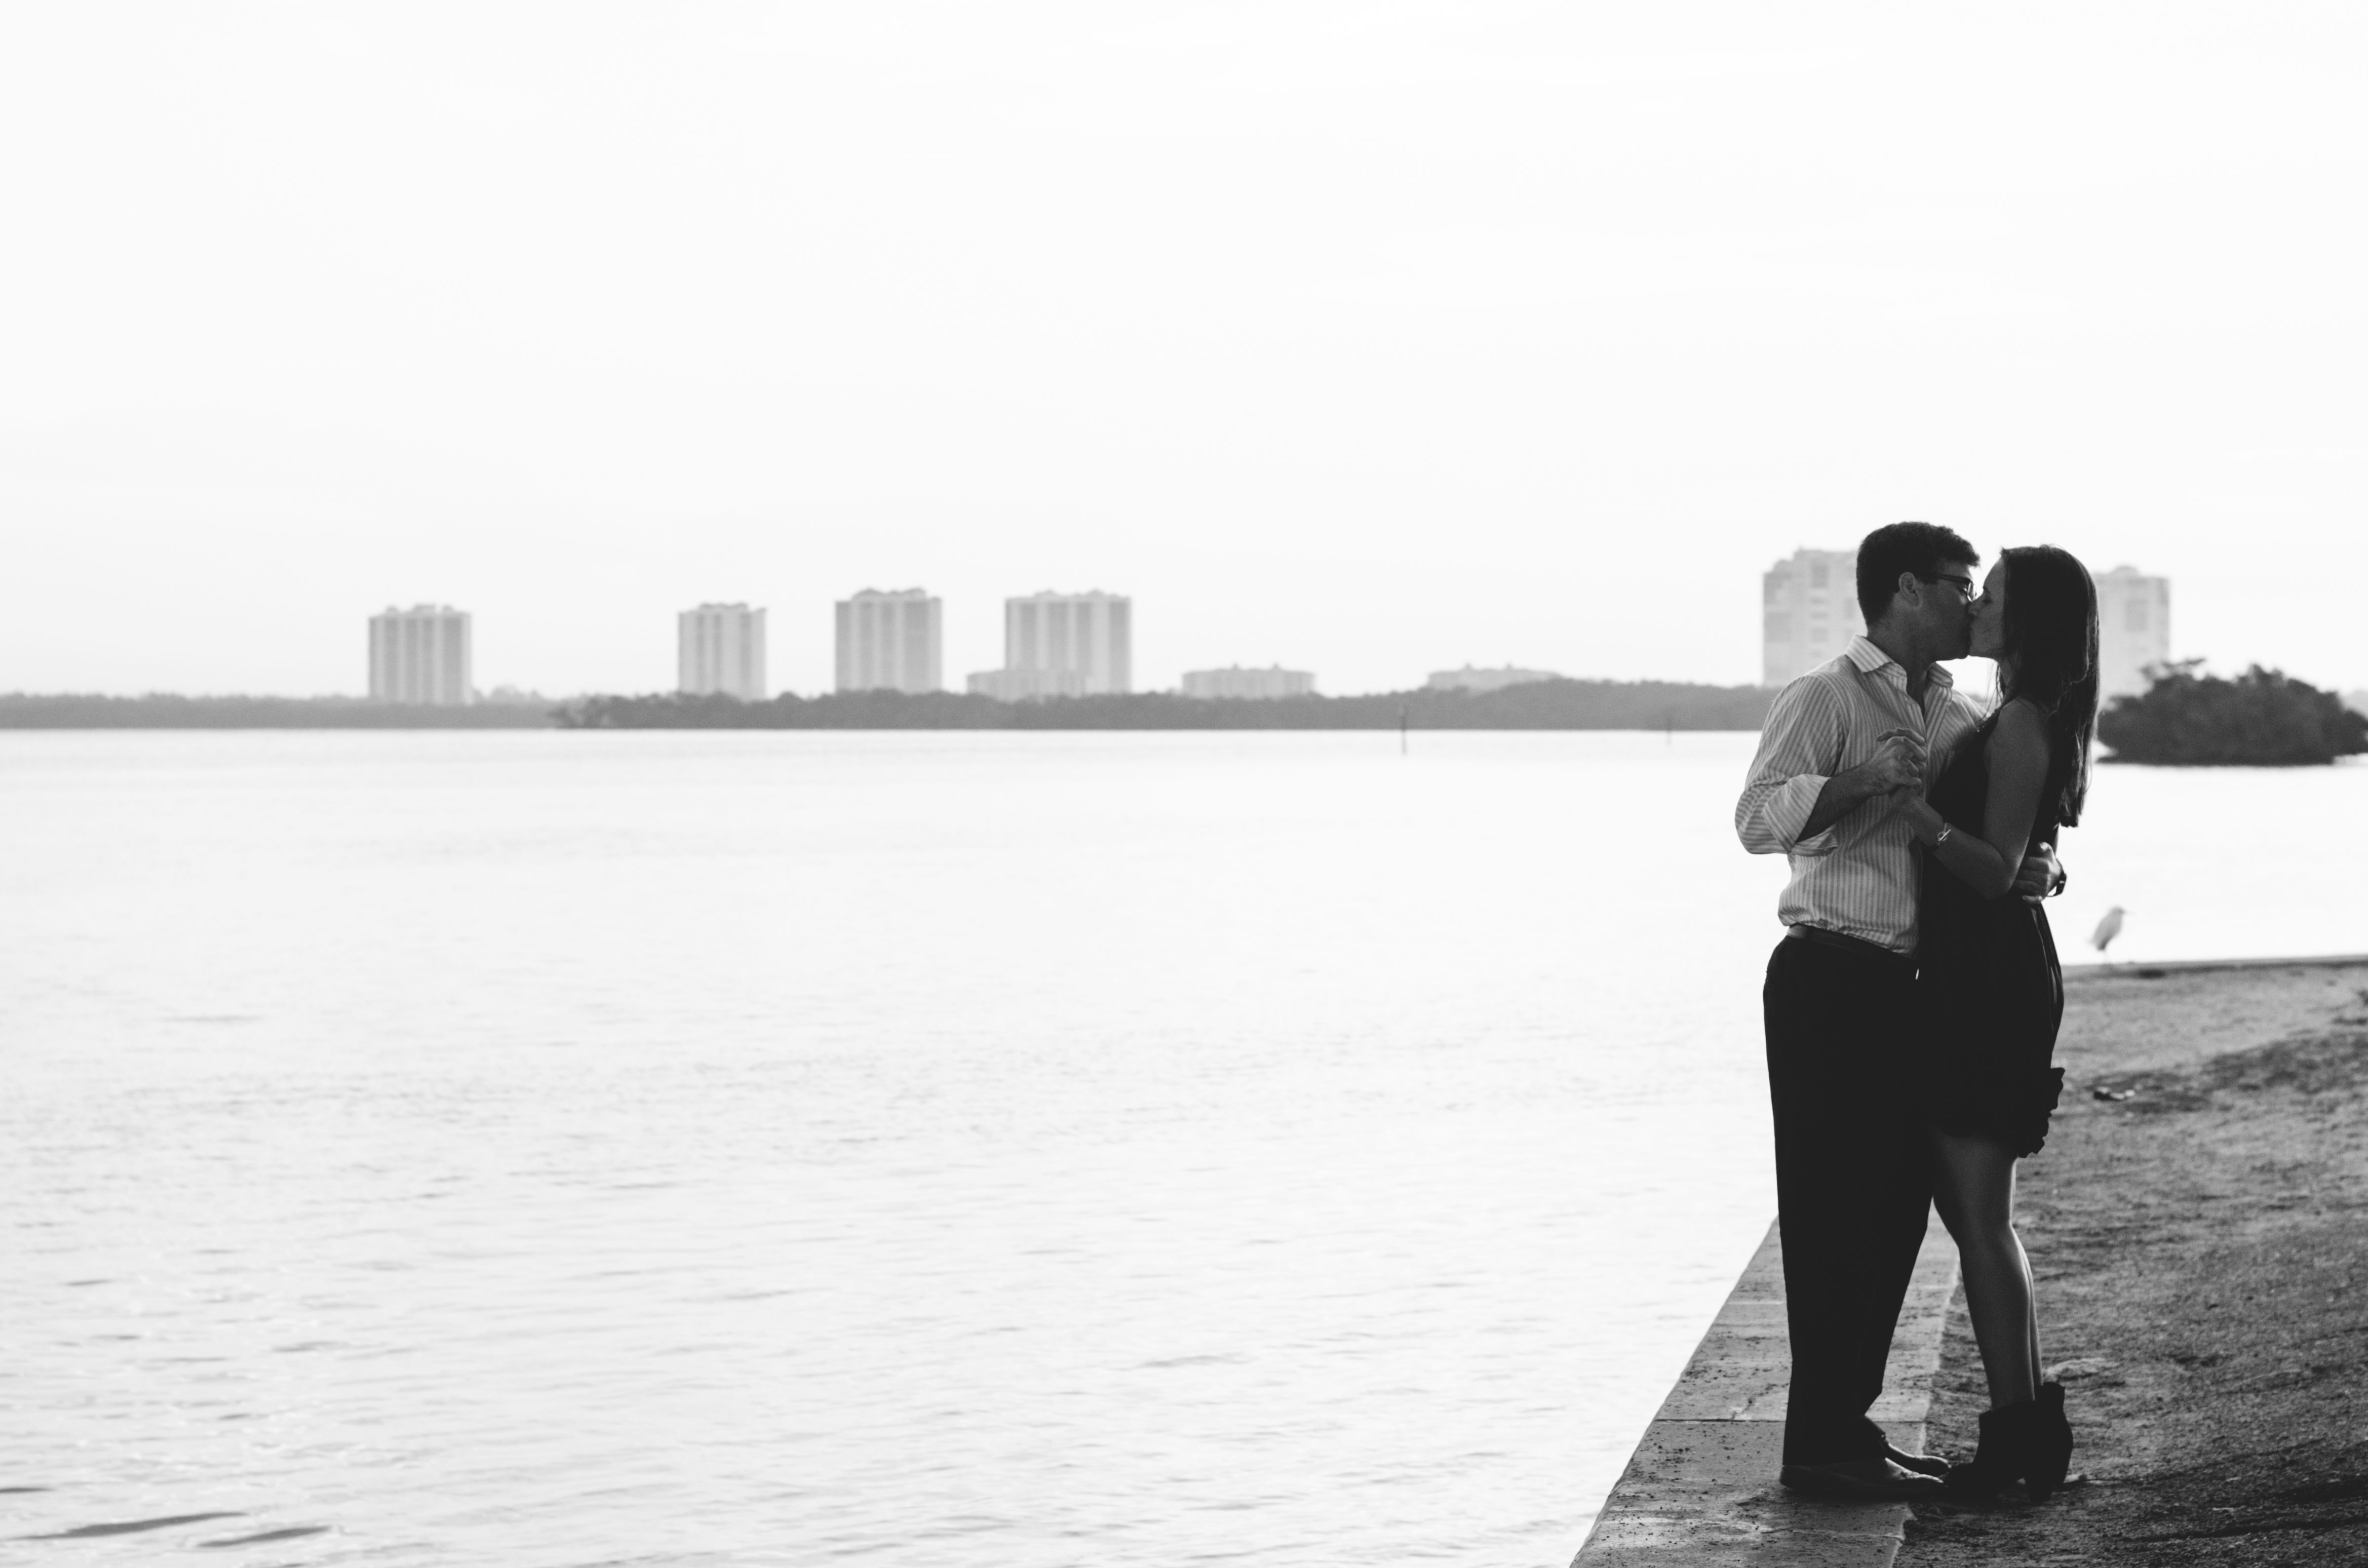 Proposal and Engagement photo shoot in one!  #engagement #romantic #blackandwhite #proposal #couple #coupledancing #vsco